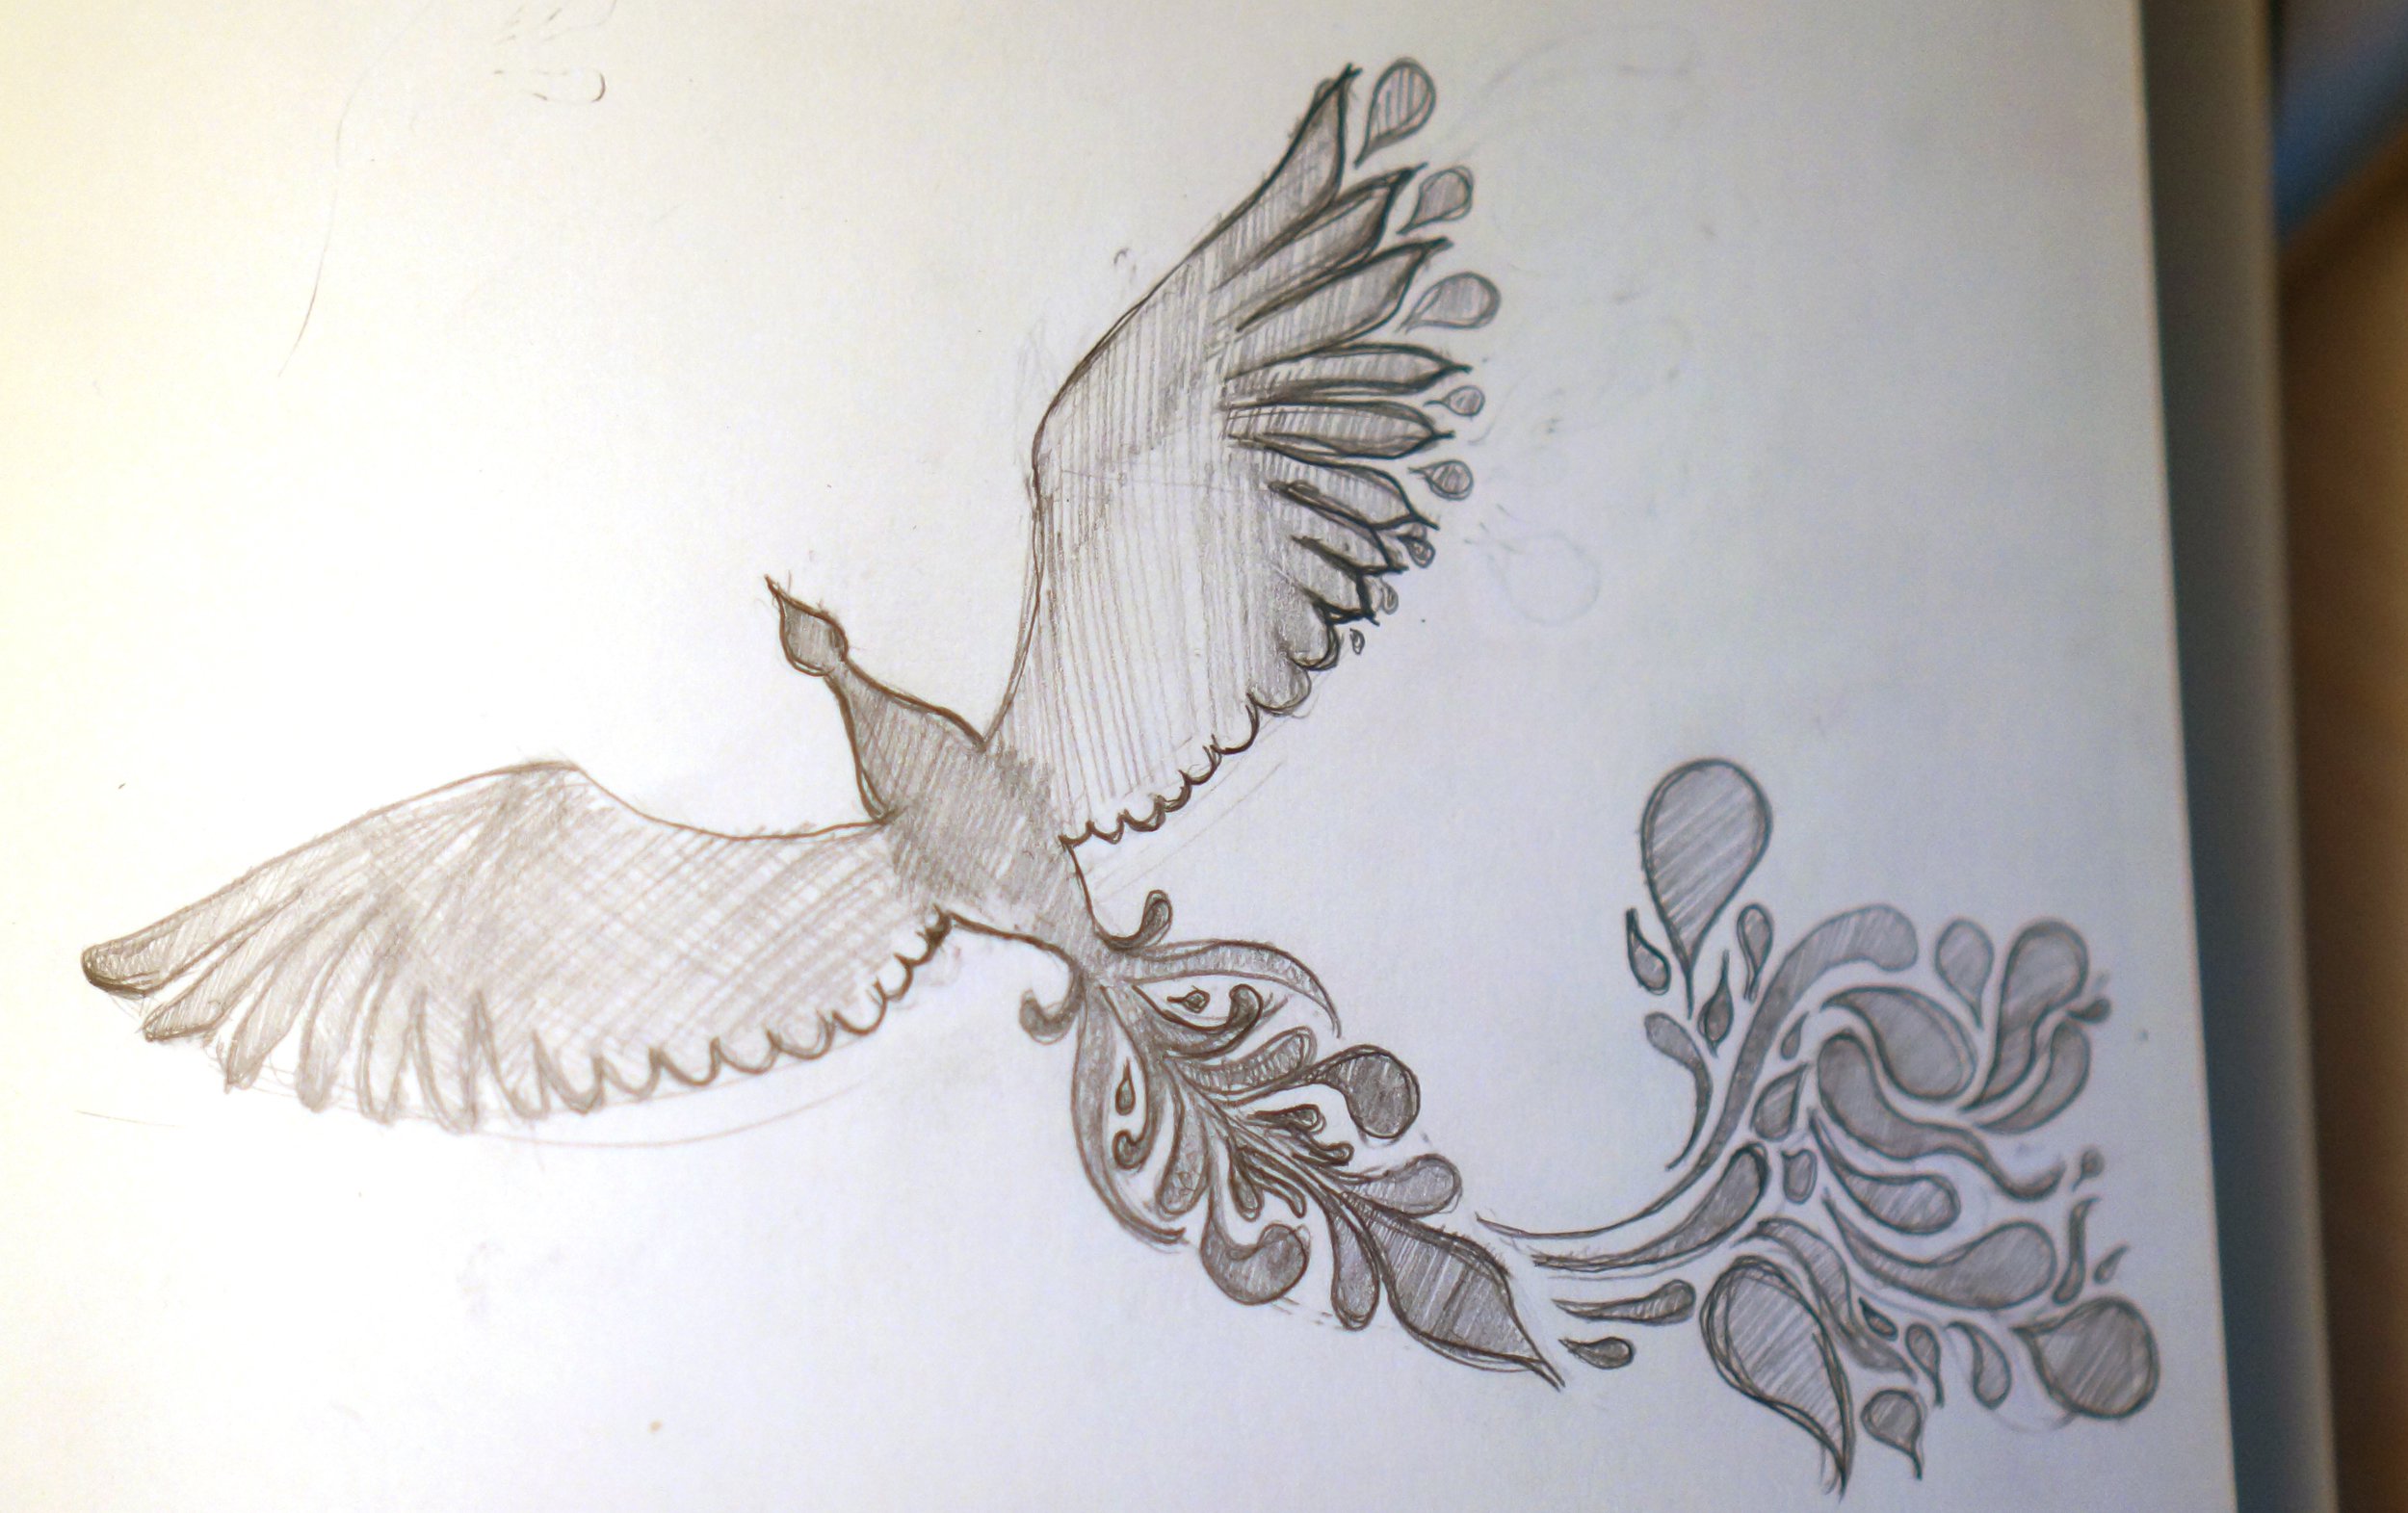 mural-detailed-bird-sketch.JPG